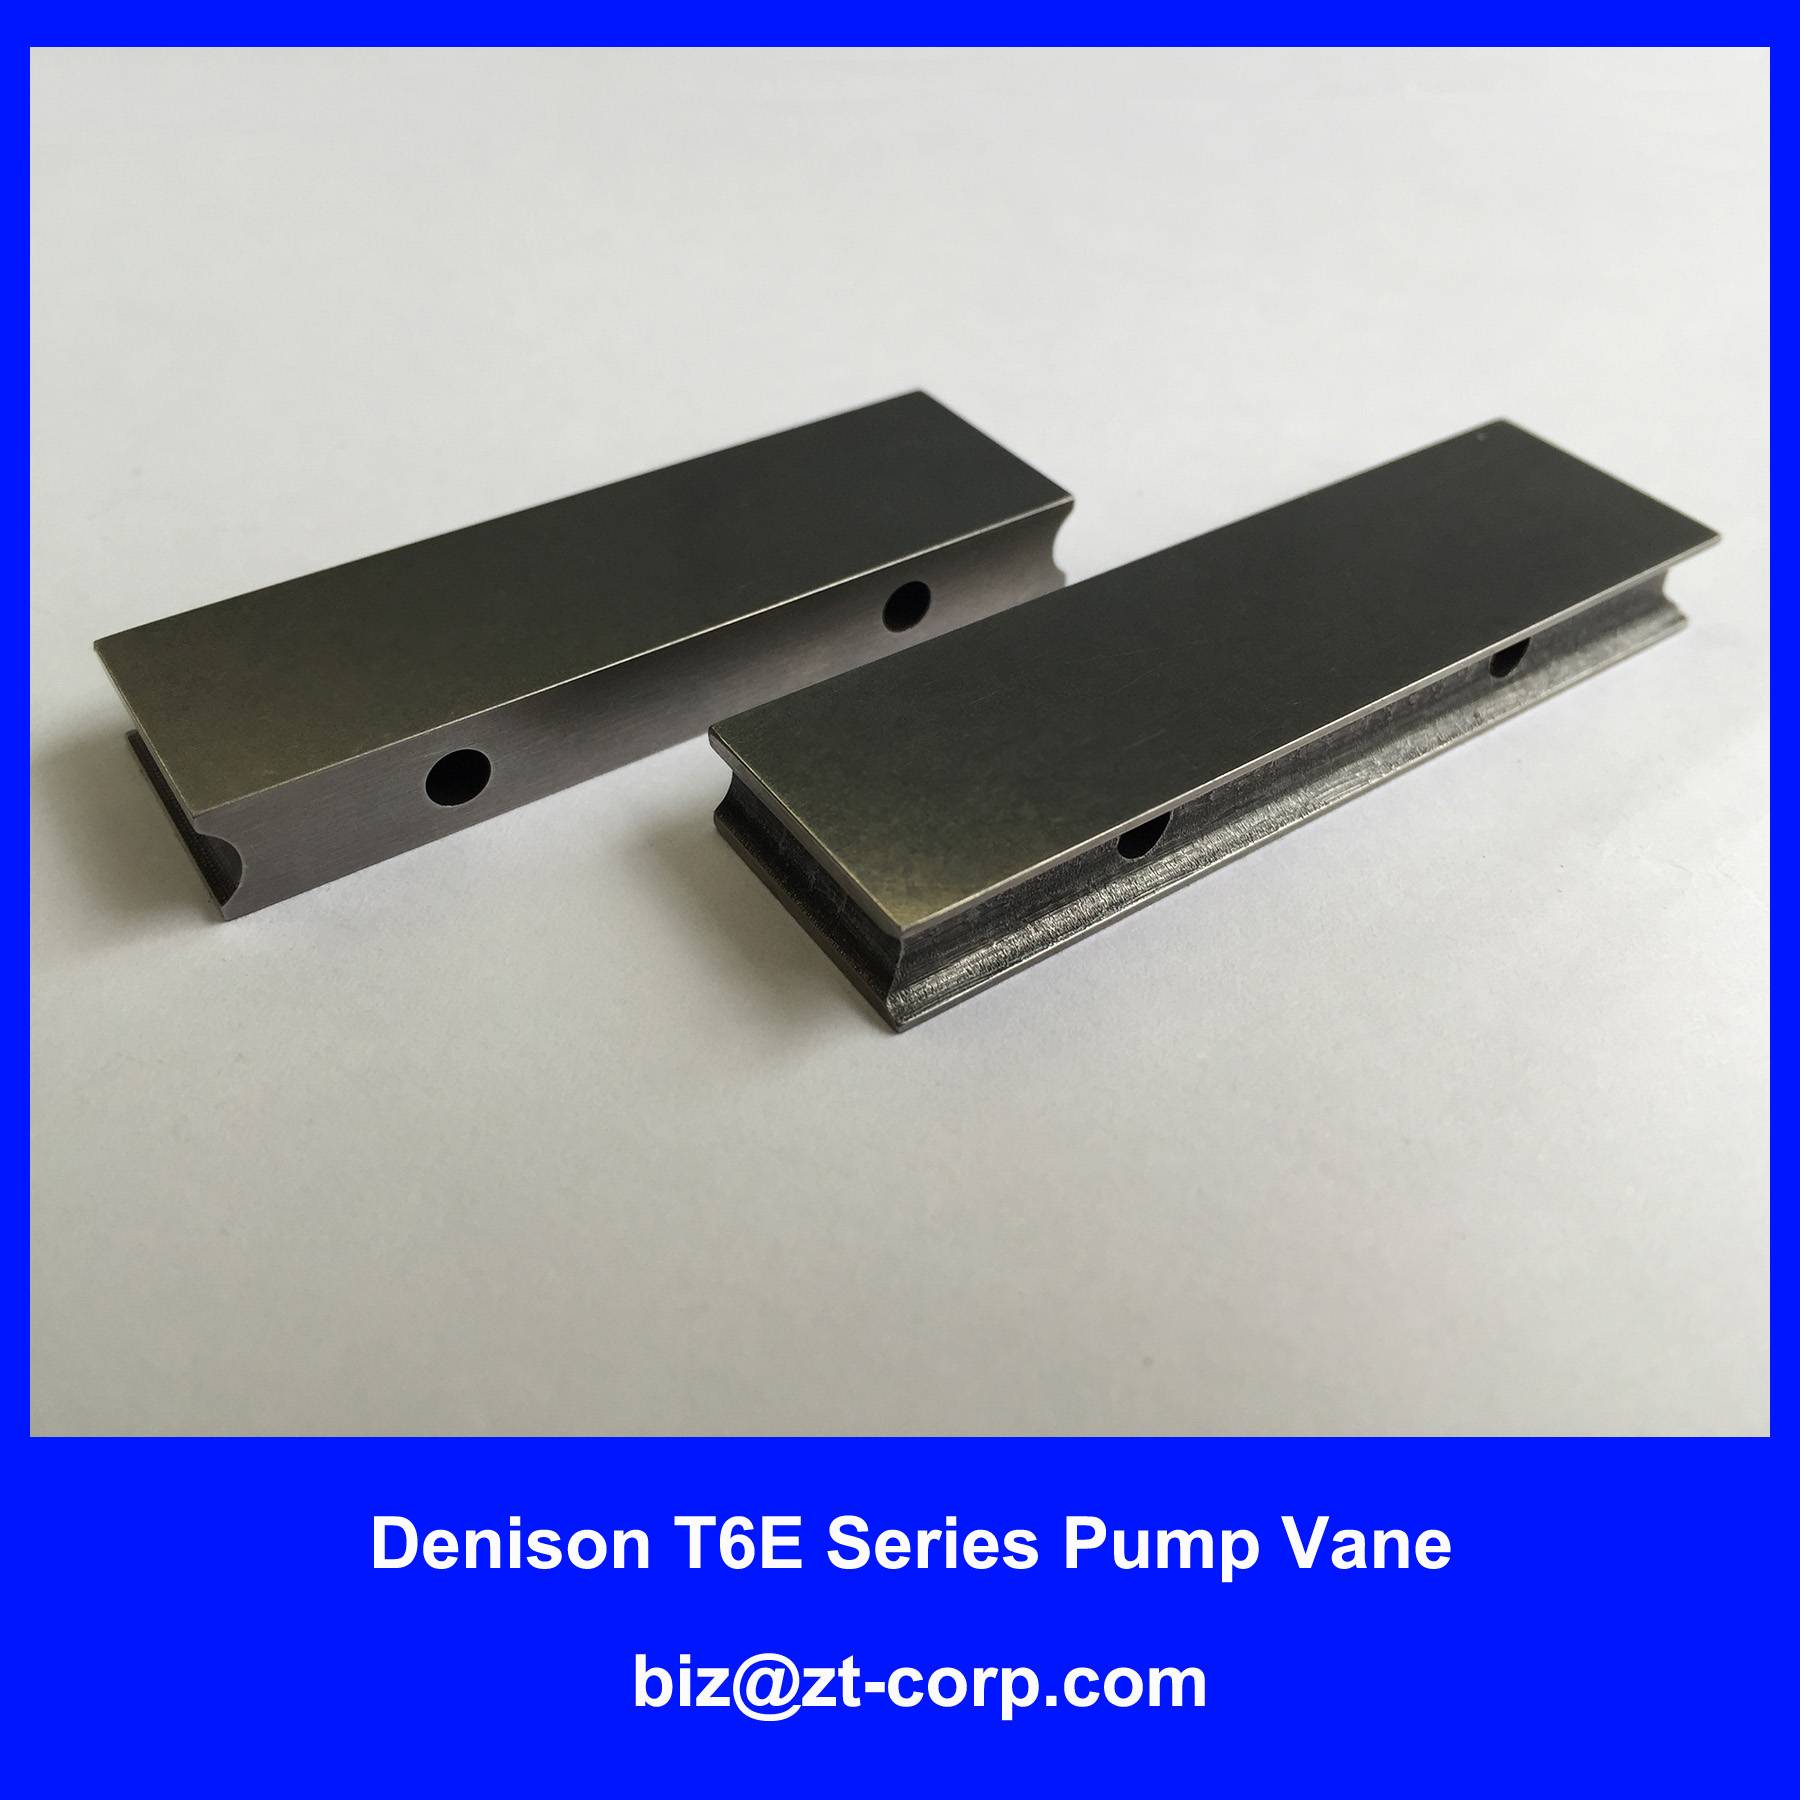 Denison T6E Series Pump Vane